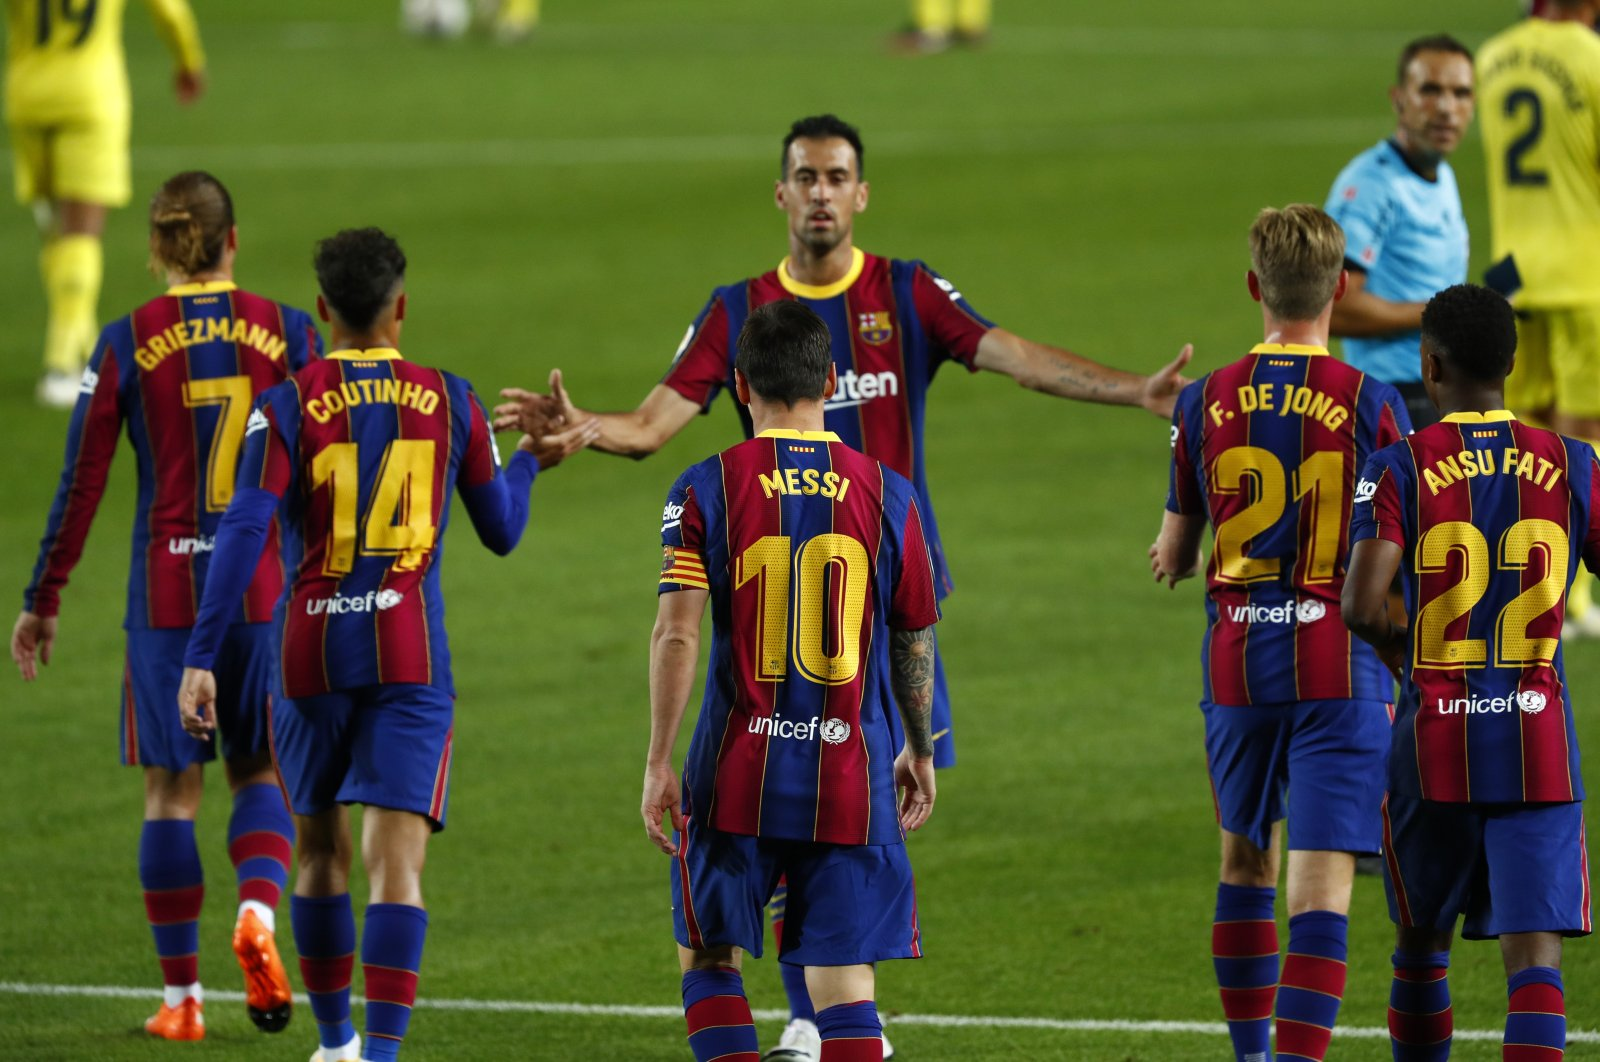 Barcelona's Lionel Messi celebrates with teammates after scoring a goal during the La Liga match against Villareal, in Barcelona, Spain, Sept. 27, 2020. (AP Photo)